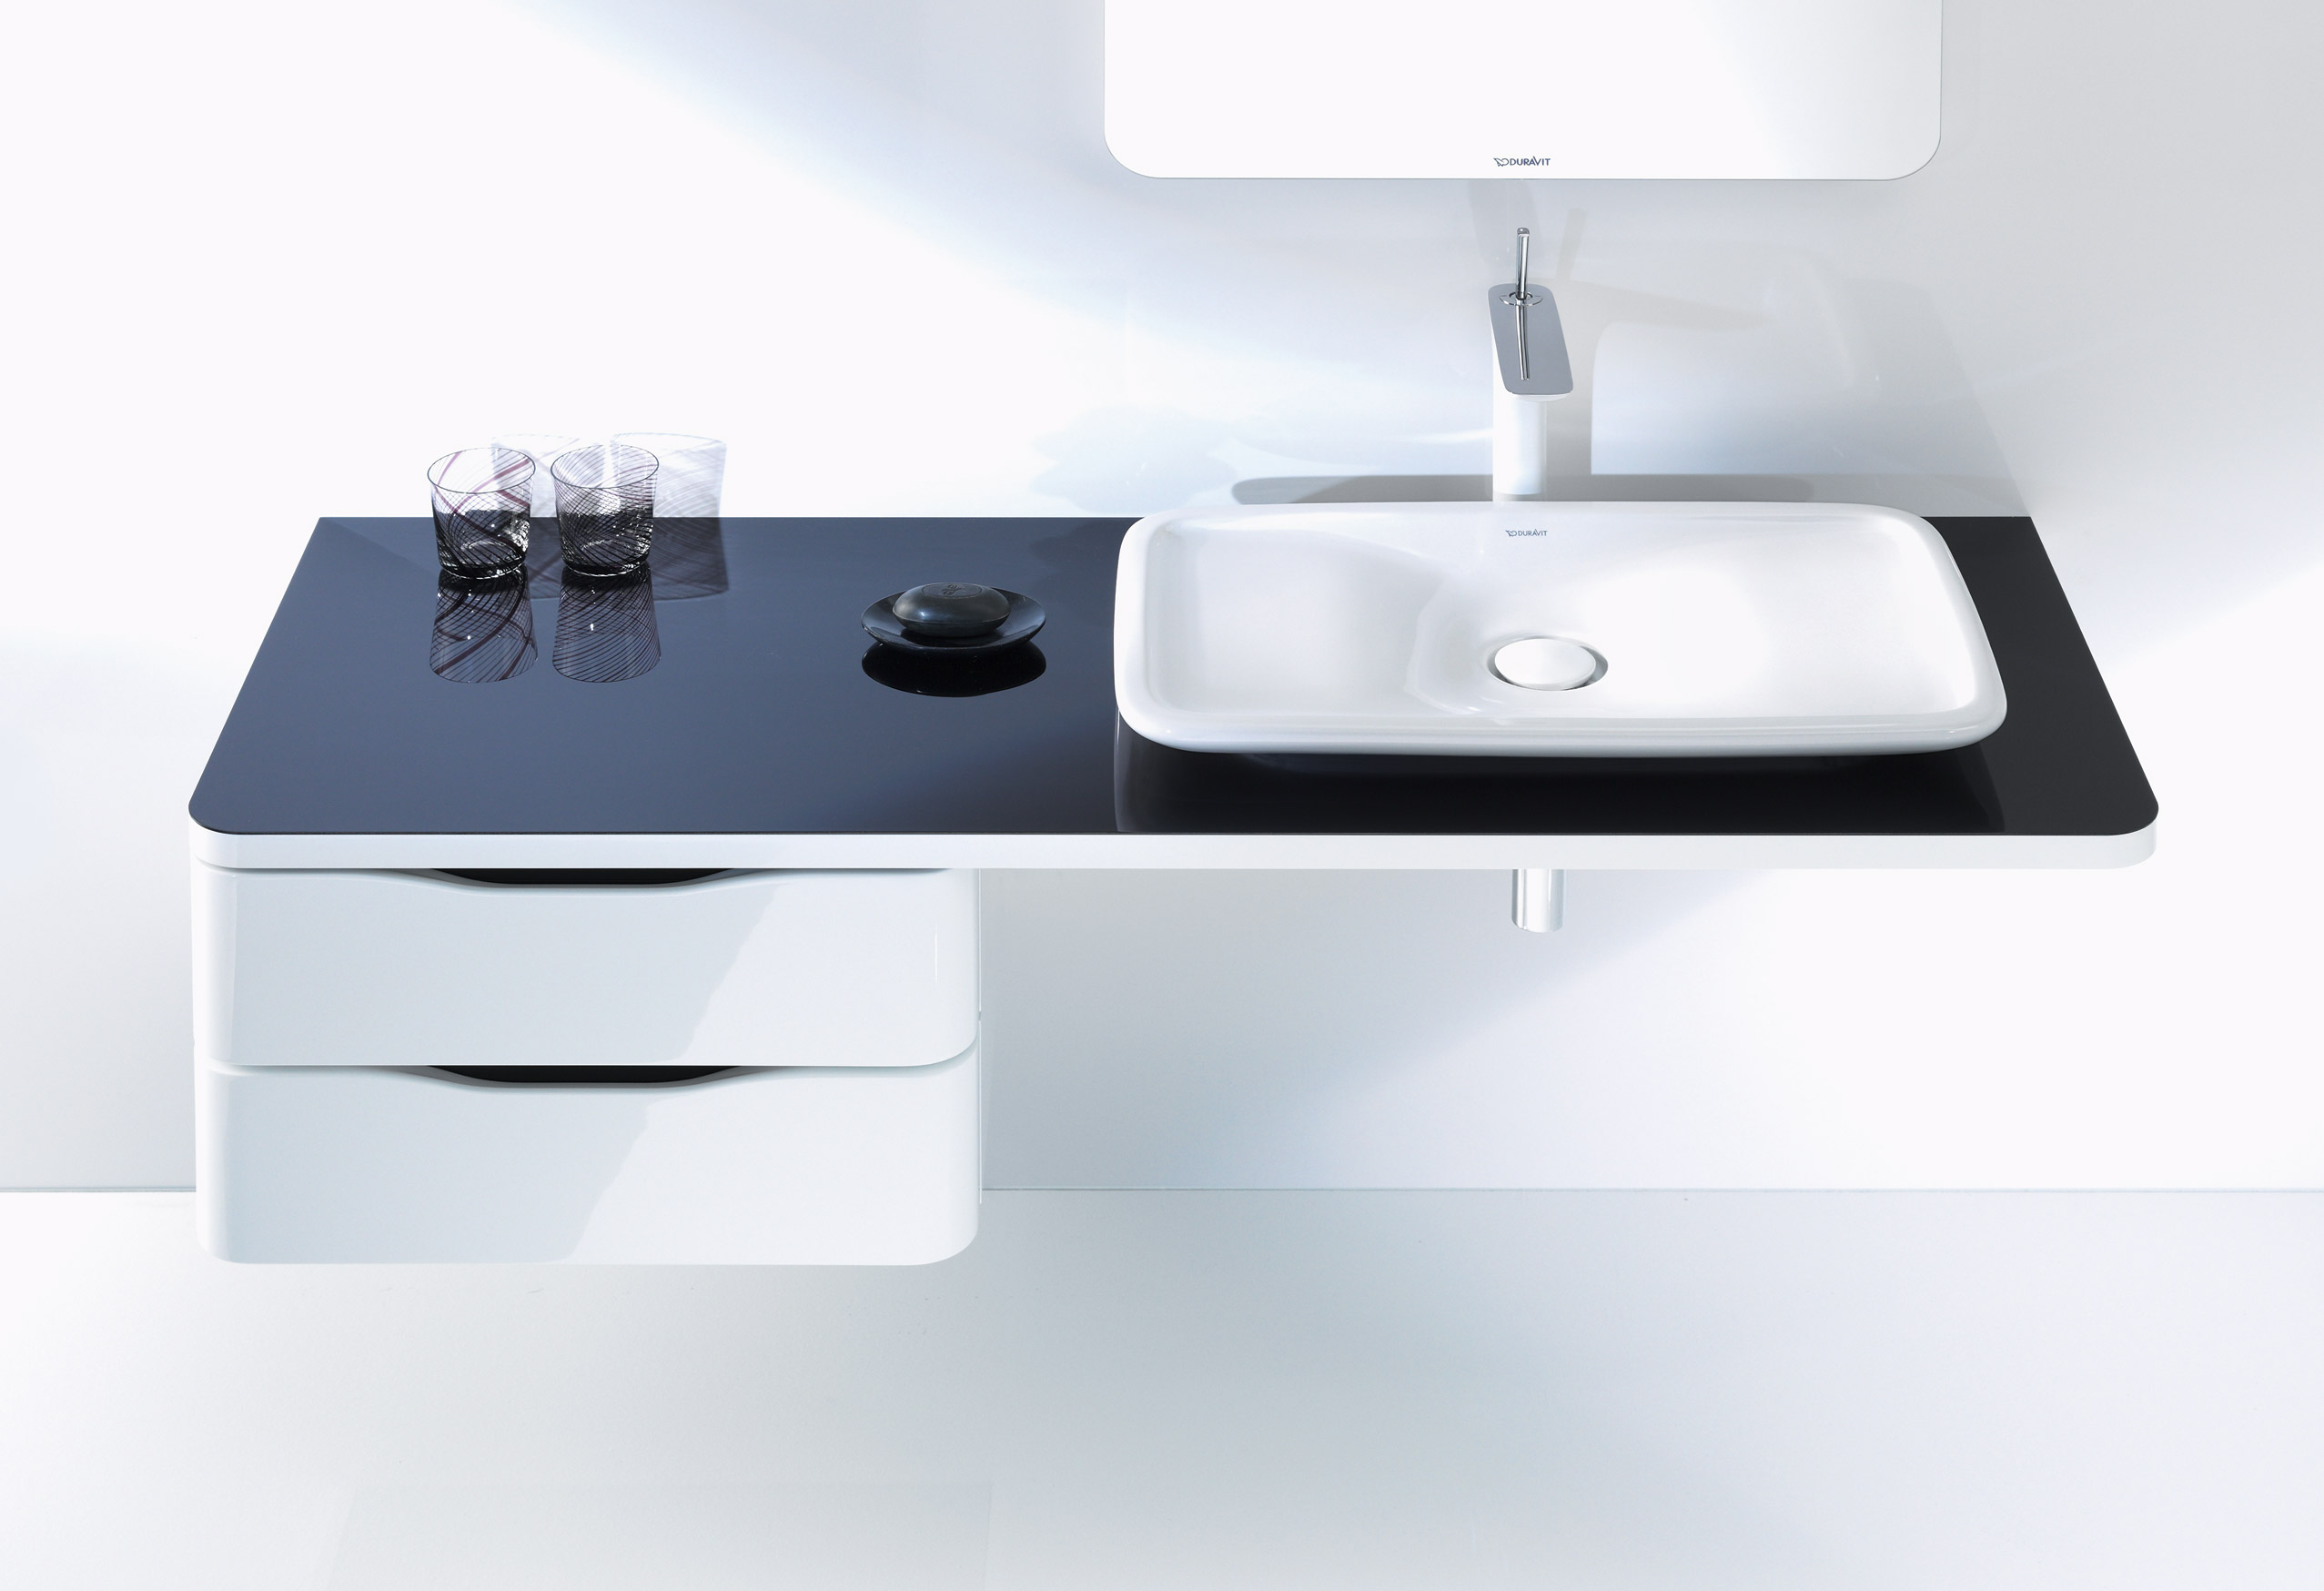 Duravit Low Cabinet Bathroom Vanity Console - PV9200 & Duravit Low Cabinet Bathroom Vanity Console - PV9200 - Bath and ...